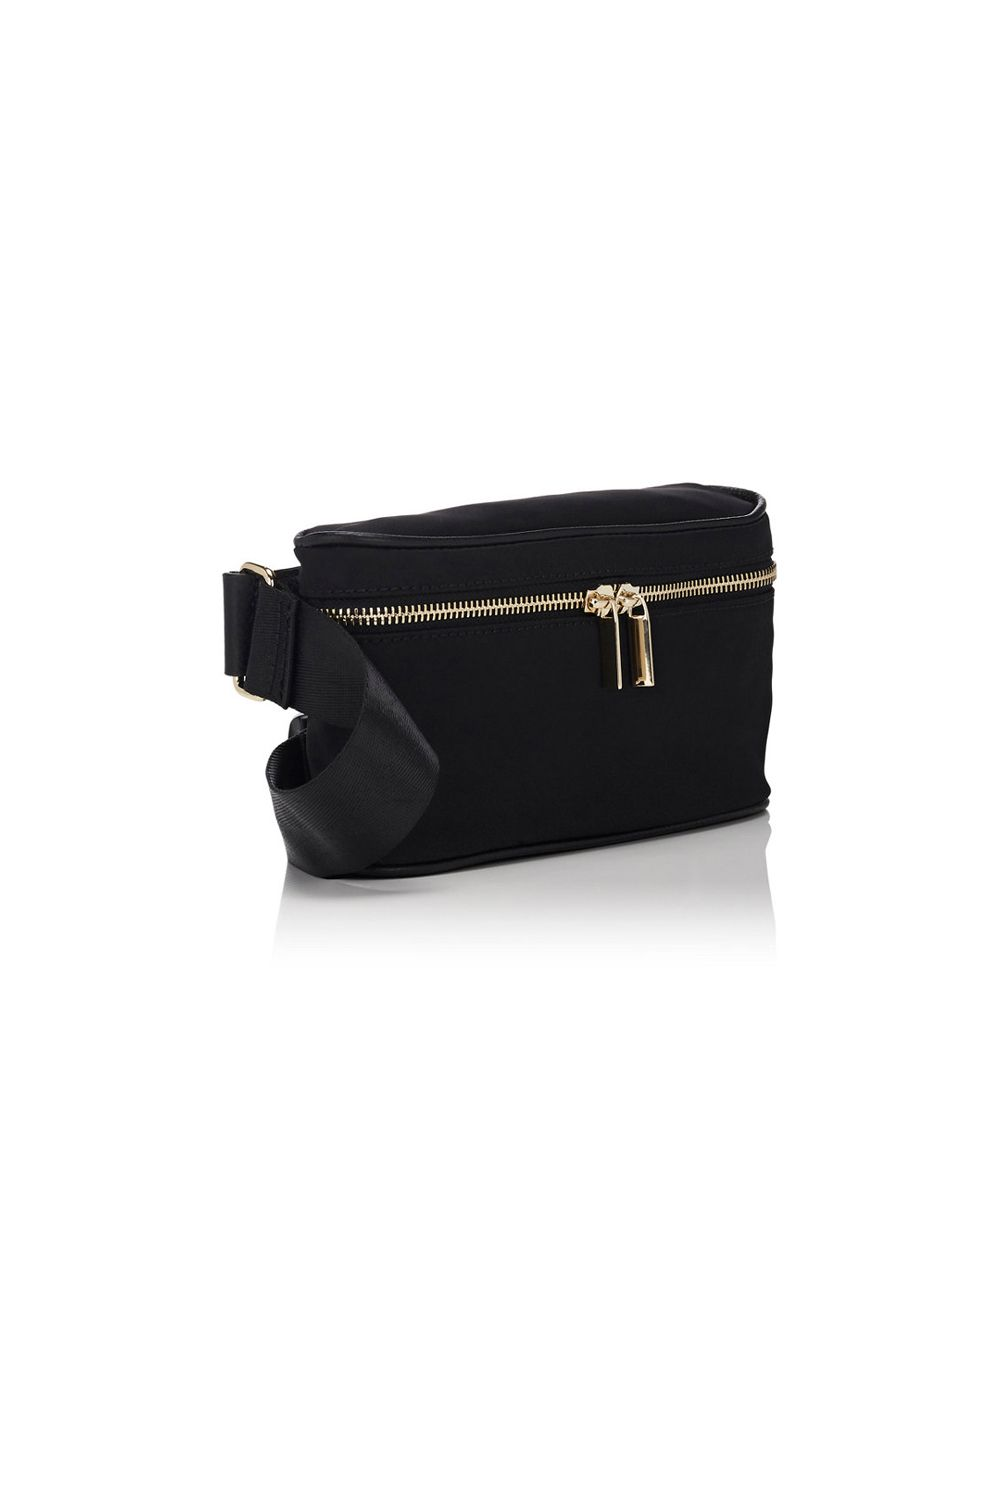 "<p> Barney's New York Belt Bag, $125; <a href=""http://www.barneys.com/product/barneys-new-york-belt-bag-503848061.html""></a><a href=""http://www.barneys.com/product/barneys-new-york-belt-bag-503848061.html"">barneys.com</a> </p>"